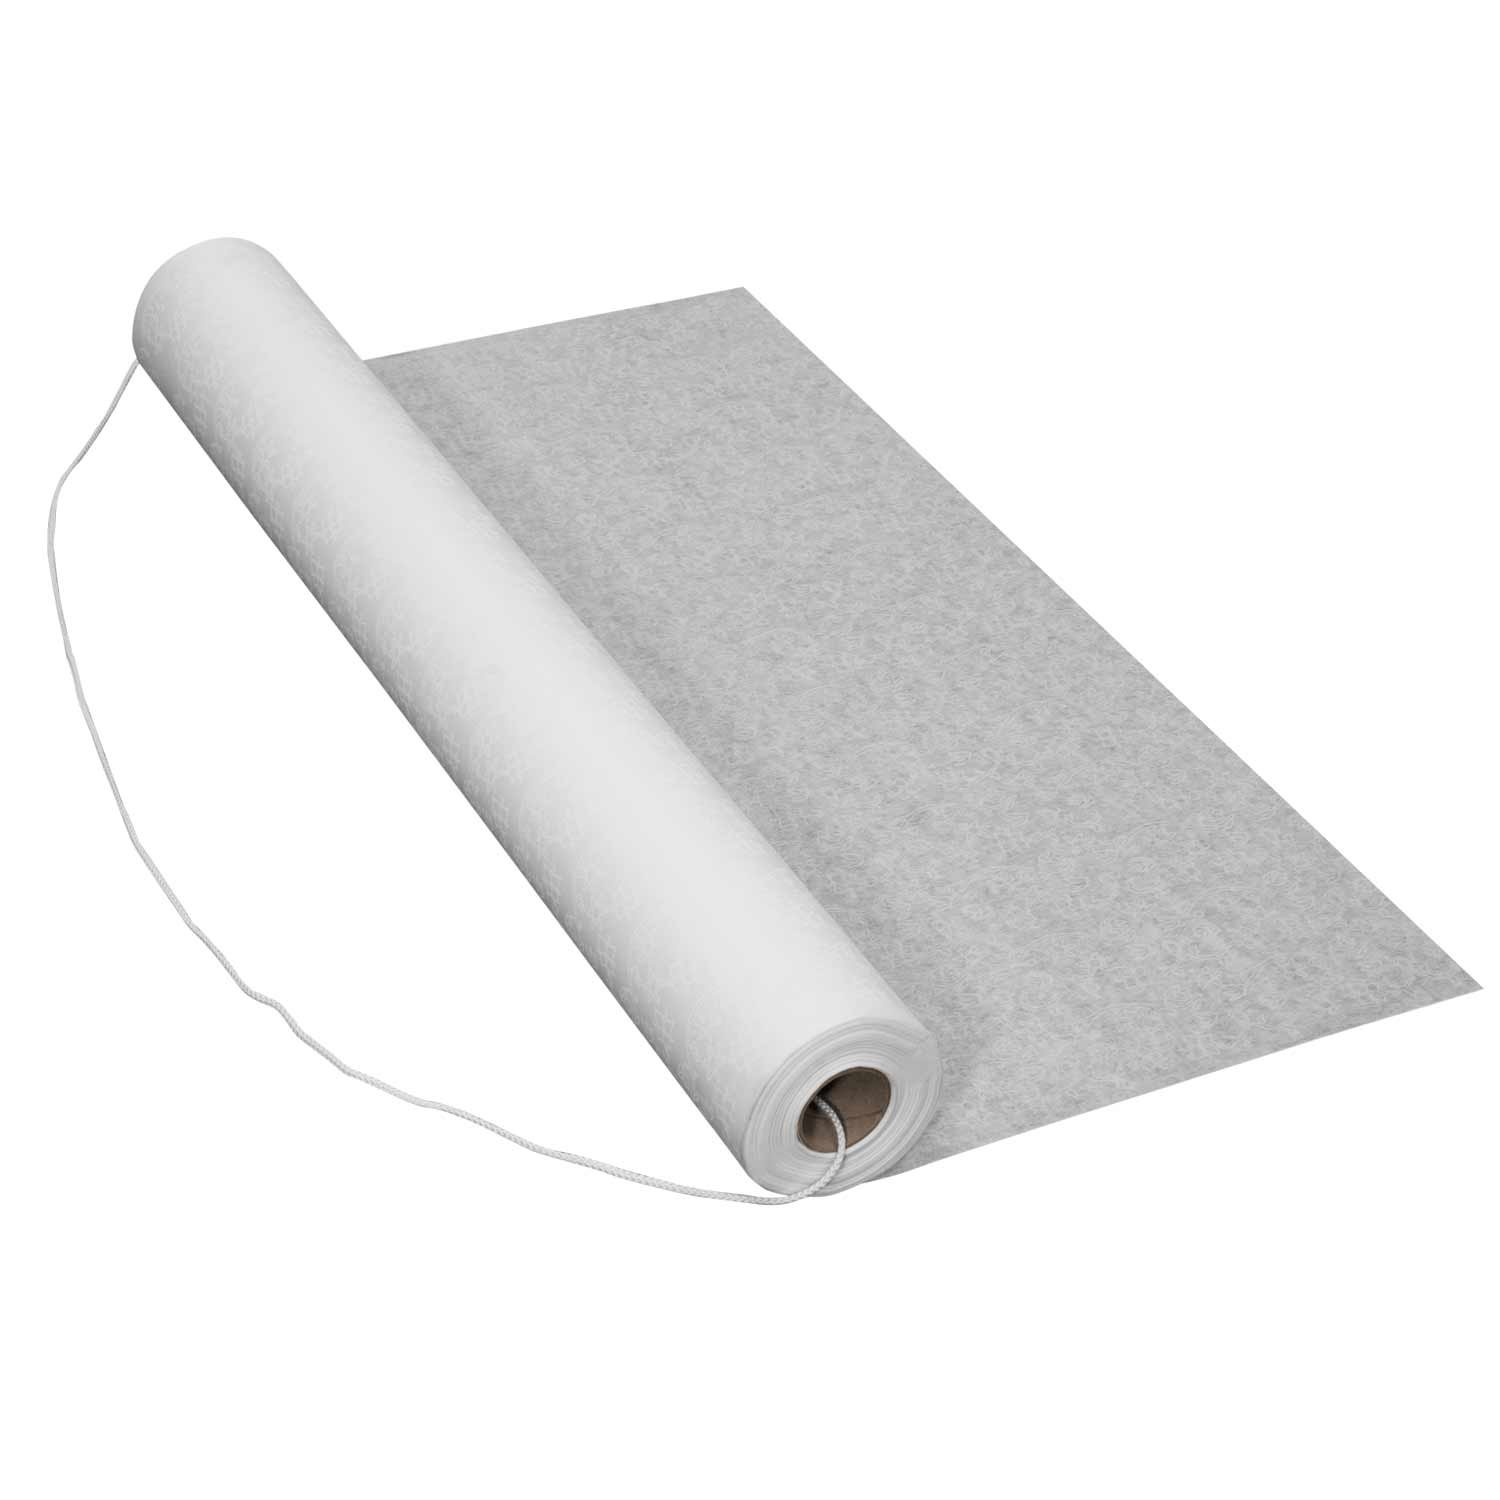 Party Essentials FL50-14 Floral Lace Aisle Runner, 50' Length x 36'' Width, White (Case of 14) by Party Essentials